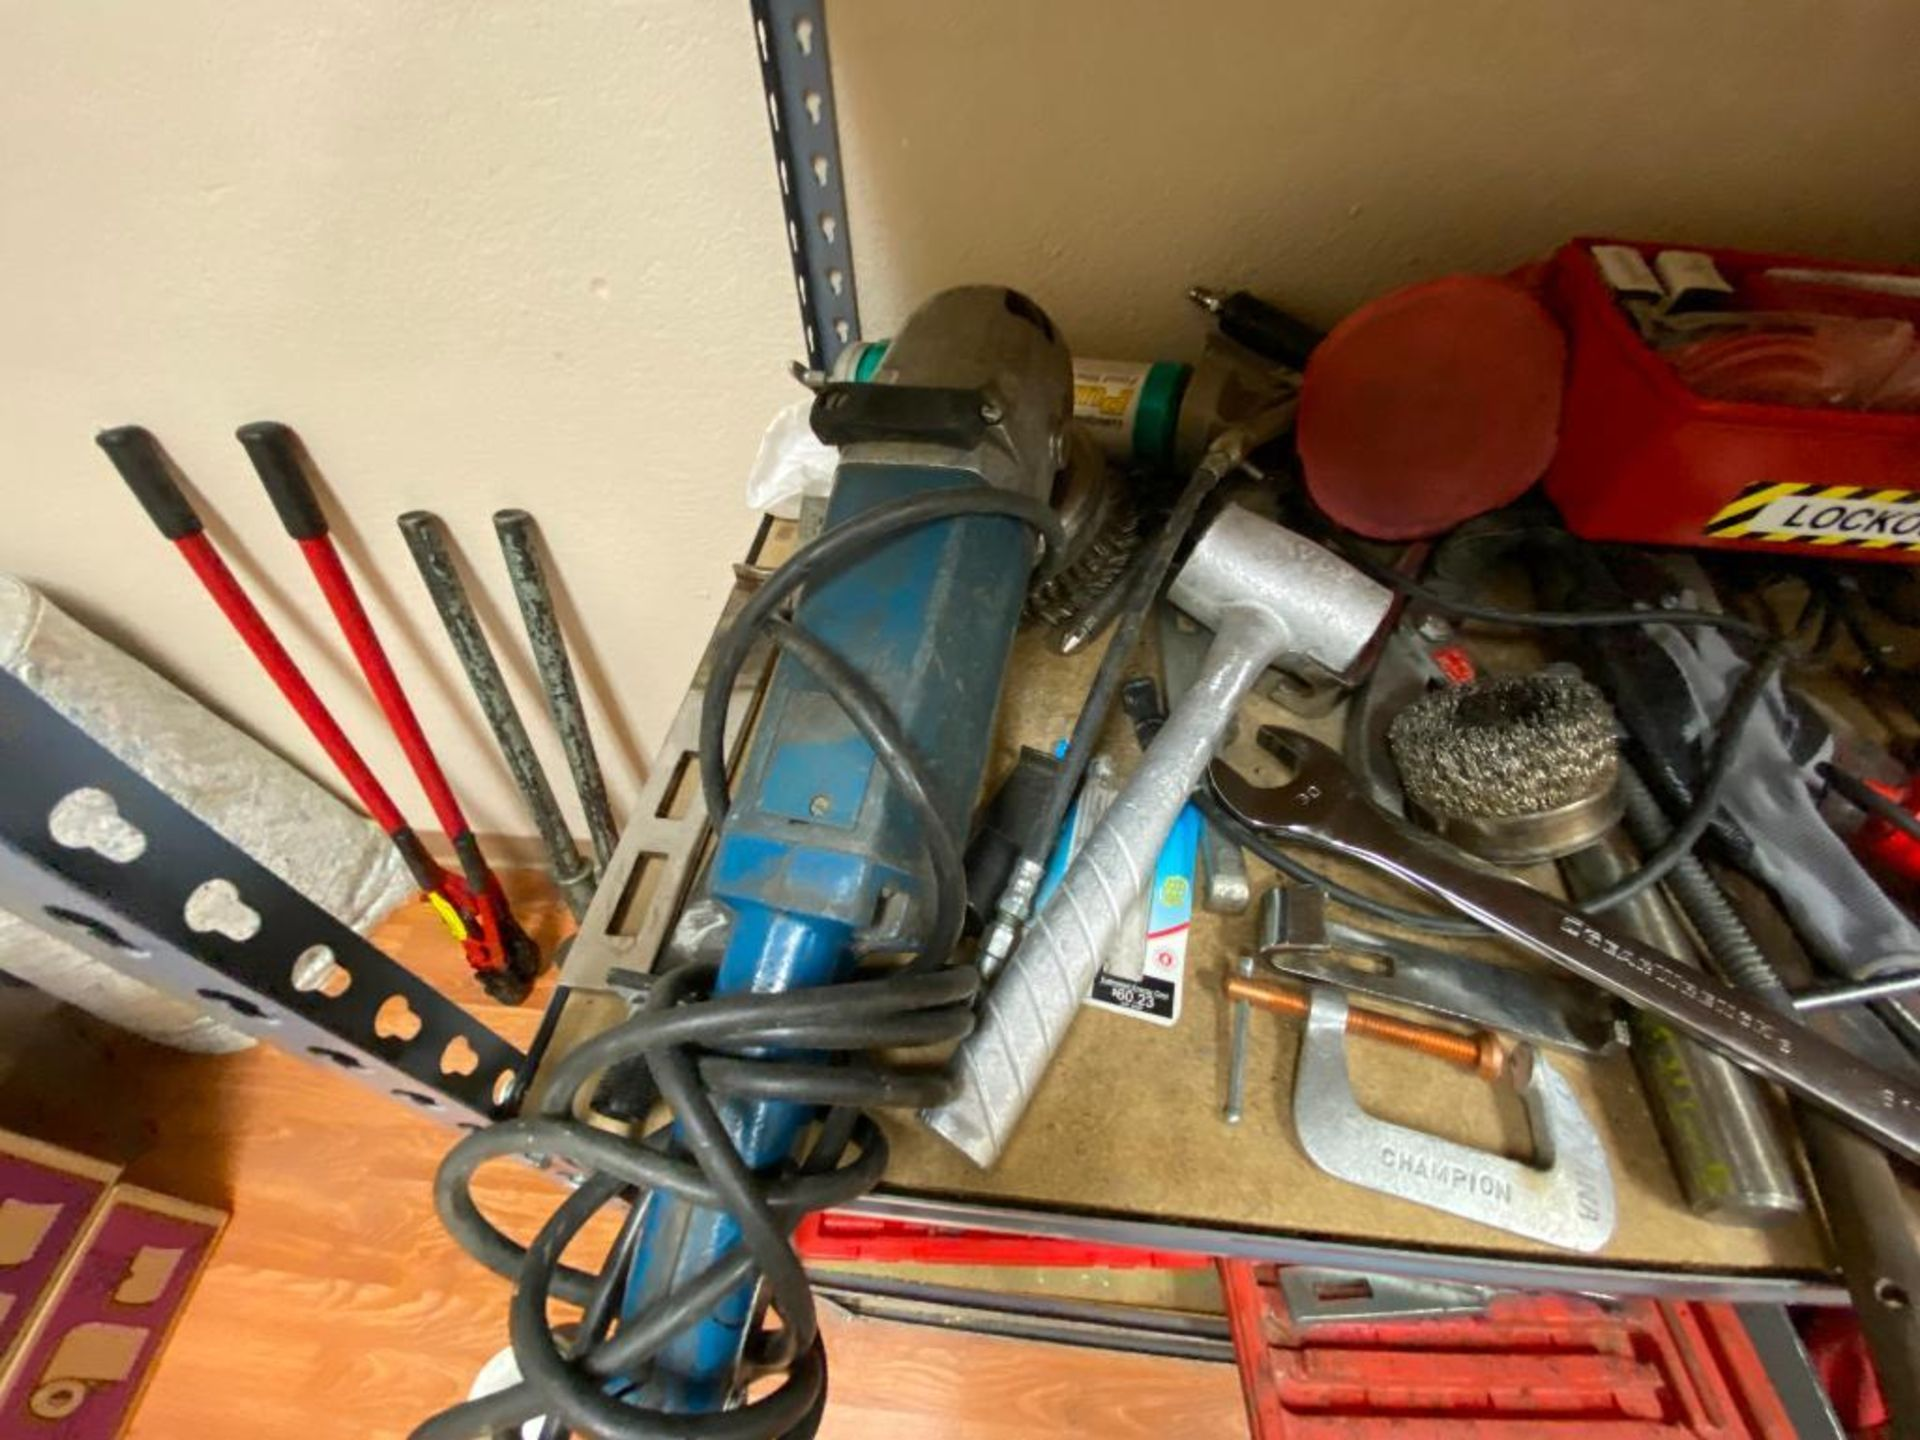 various tools includes bits, large wrenches, lockout tagout kit, grinder - Image 11 of 18